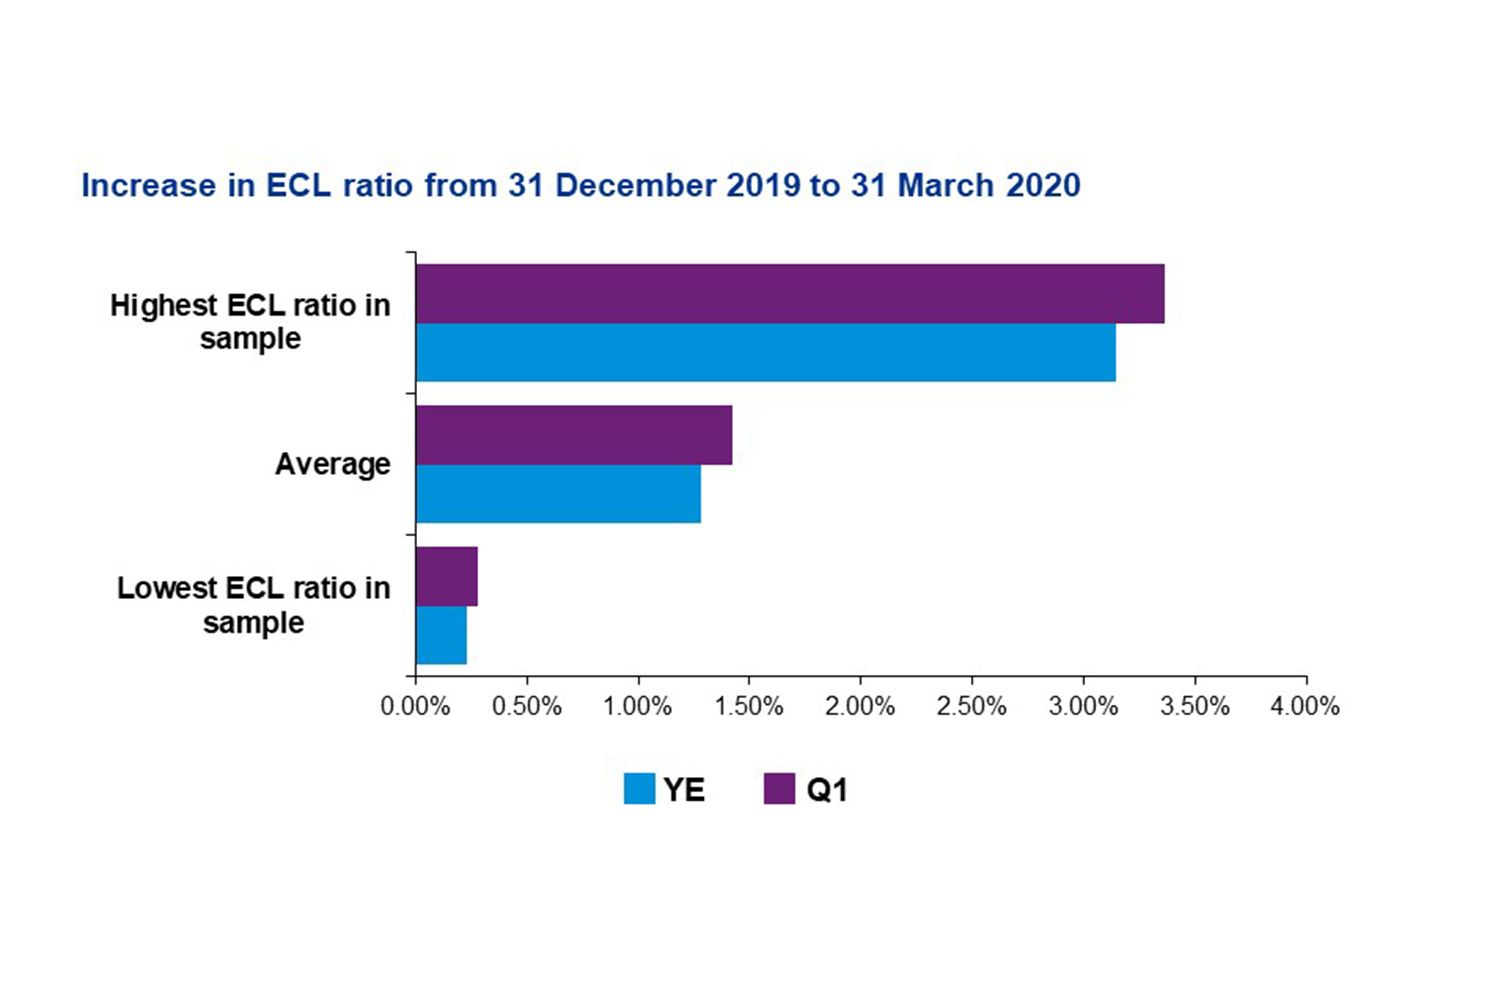 Increase in ECL ratio from 31 December 2019 to 31 March 2020